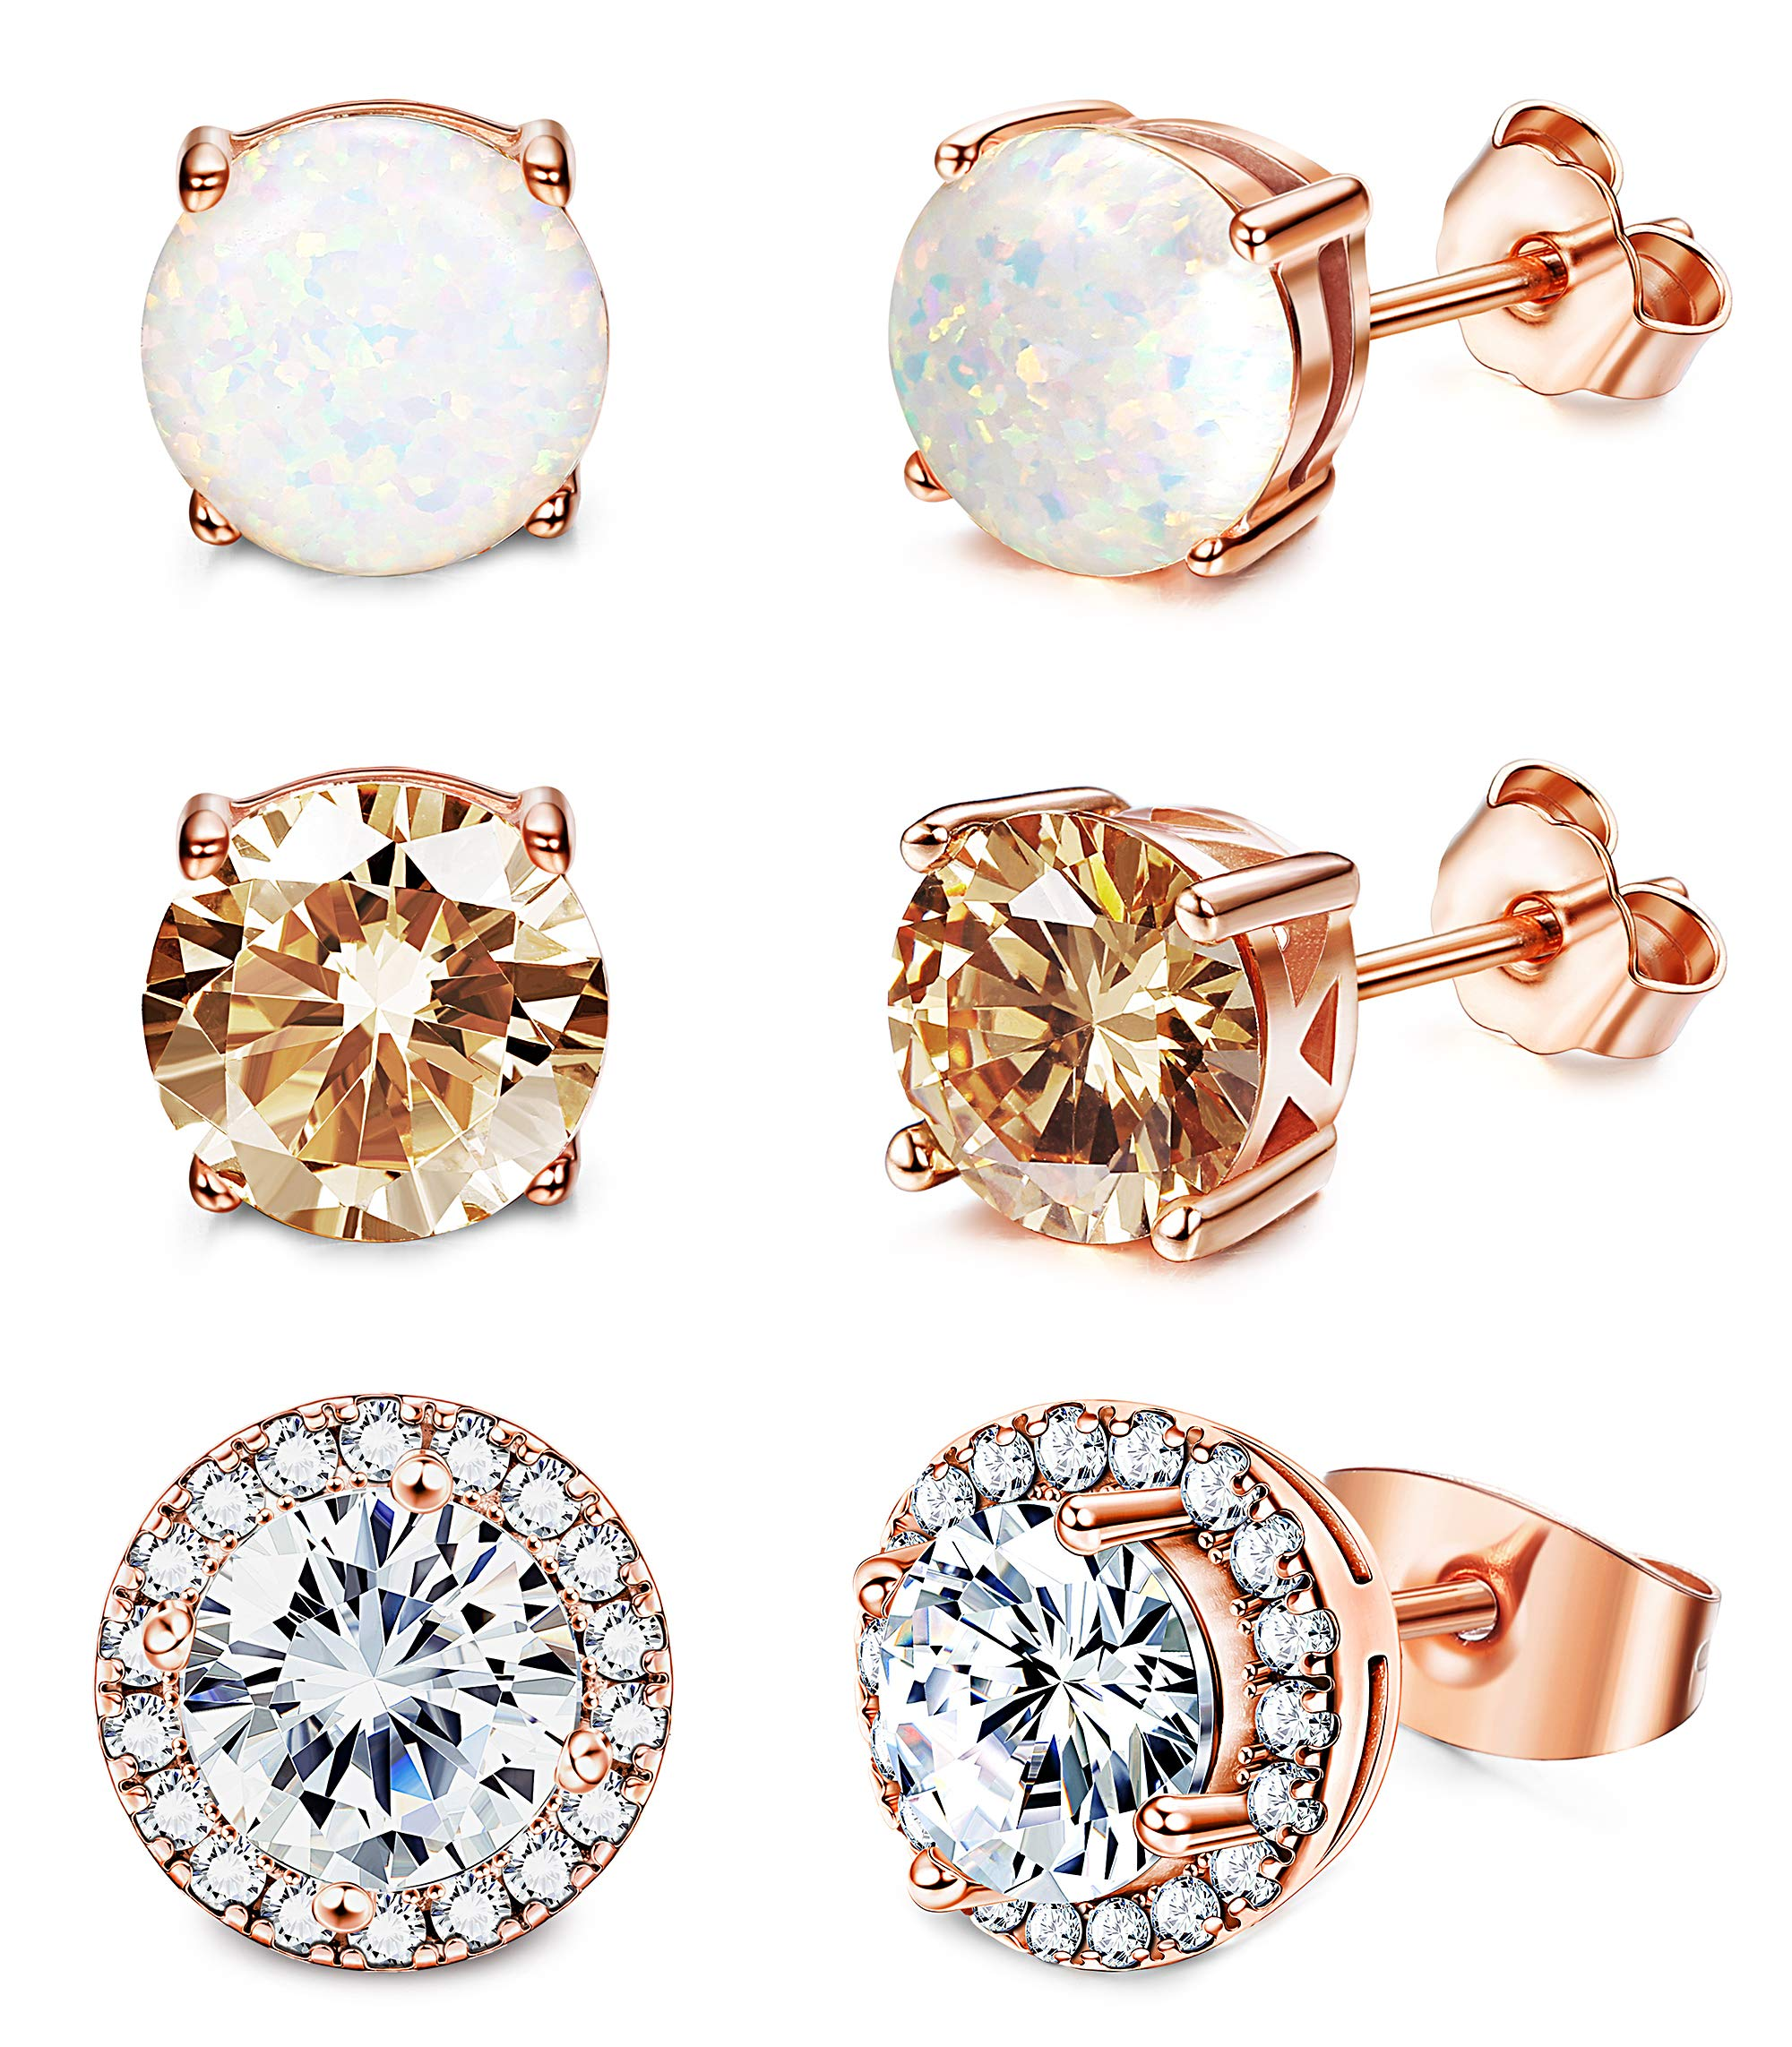 Jstyle Stud Earrings for Women 18K White Gold Rose Plated CZ Halo Earrings Created Opal Earrings Set for Sensitive Ears with Gift Box by Jstyle